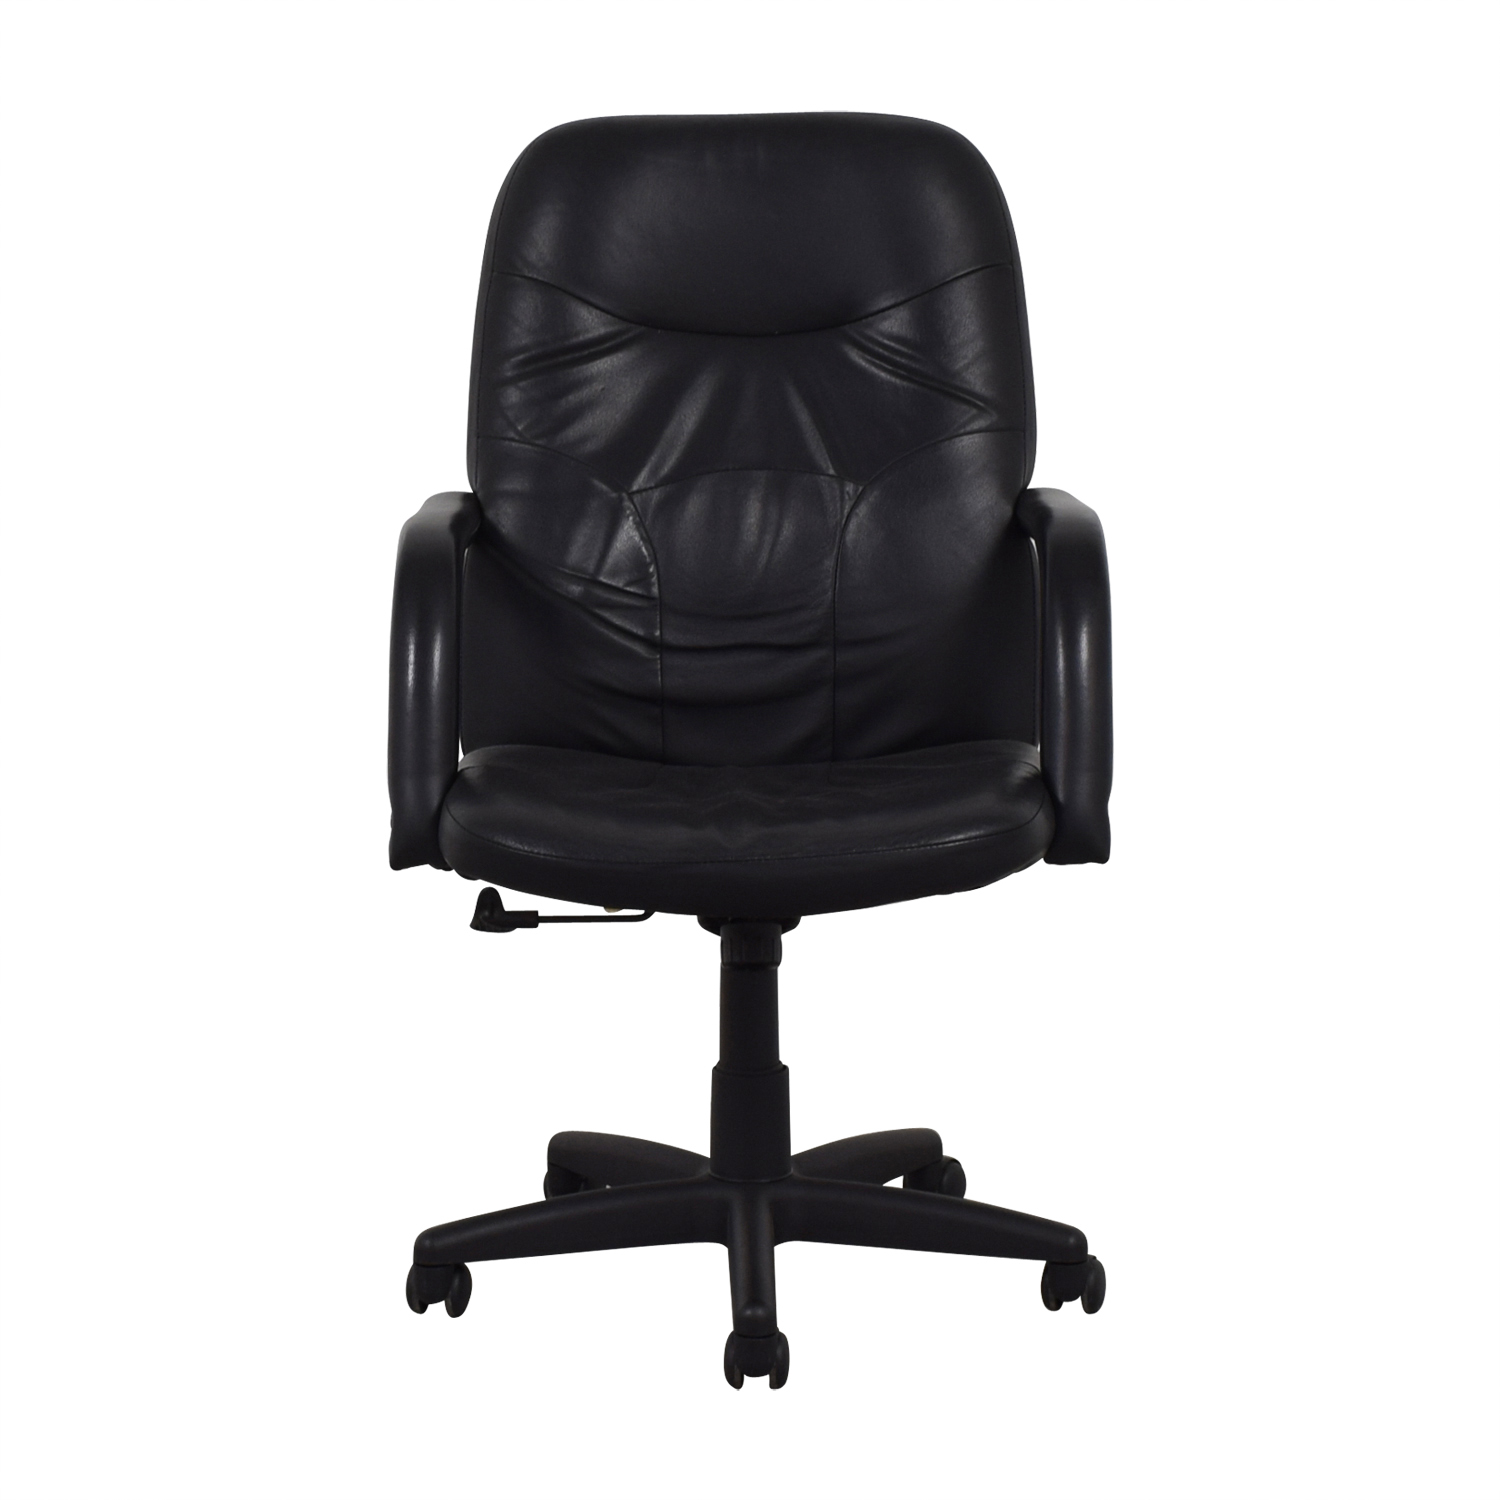 Raymour & Flanigan Raymour & Flanigan Black Office Chair Chairs